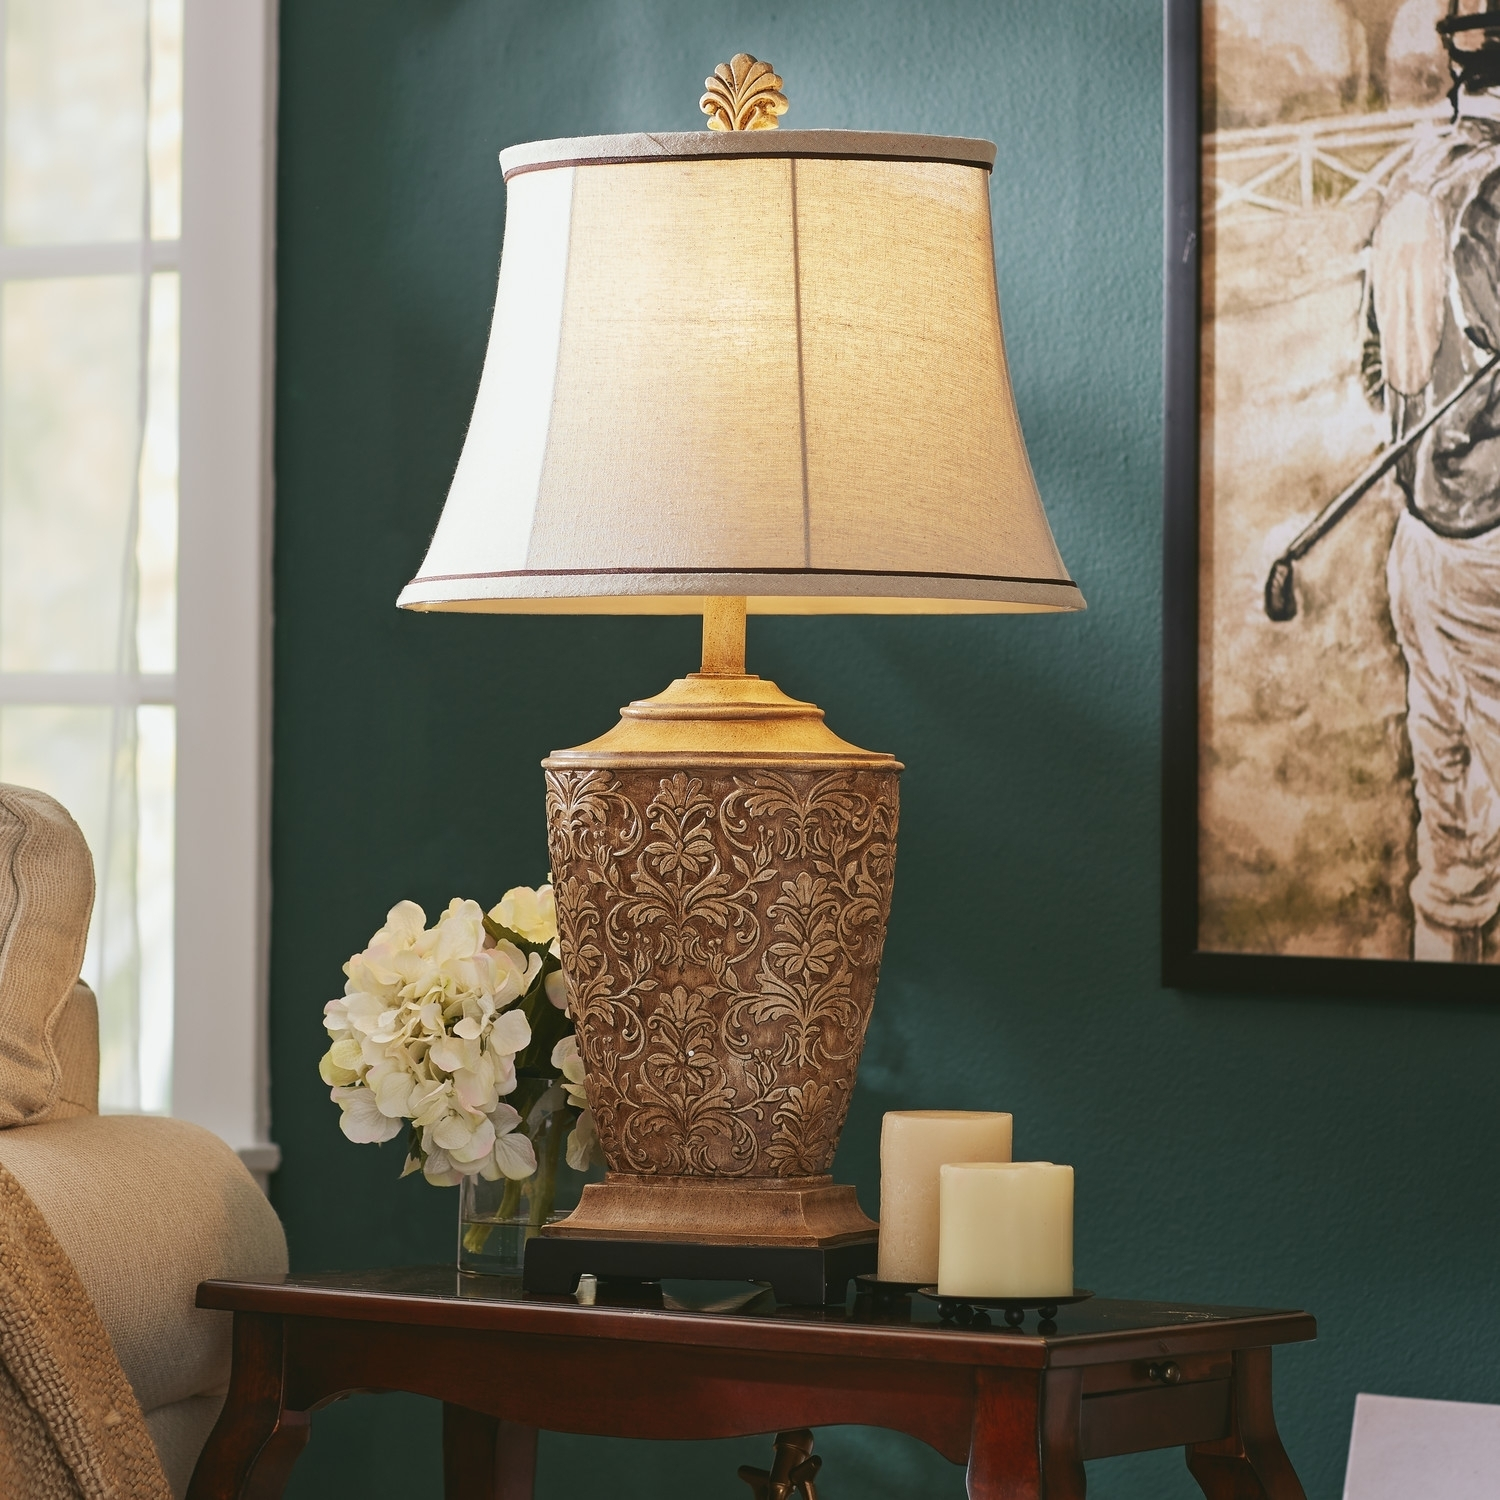 Inspiration about 34 Most Blue Chip Small Bedside Table Lamps Affordable Teal Lamp For With Regard To Teal Living Room Table Lamps (#1 of 15)